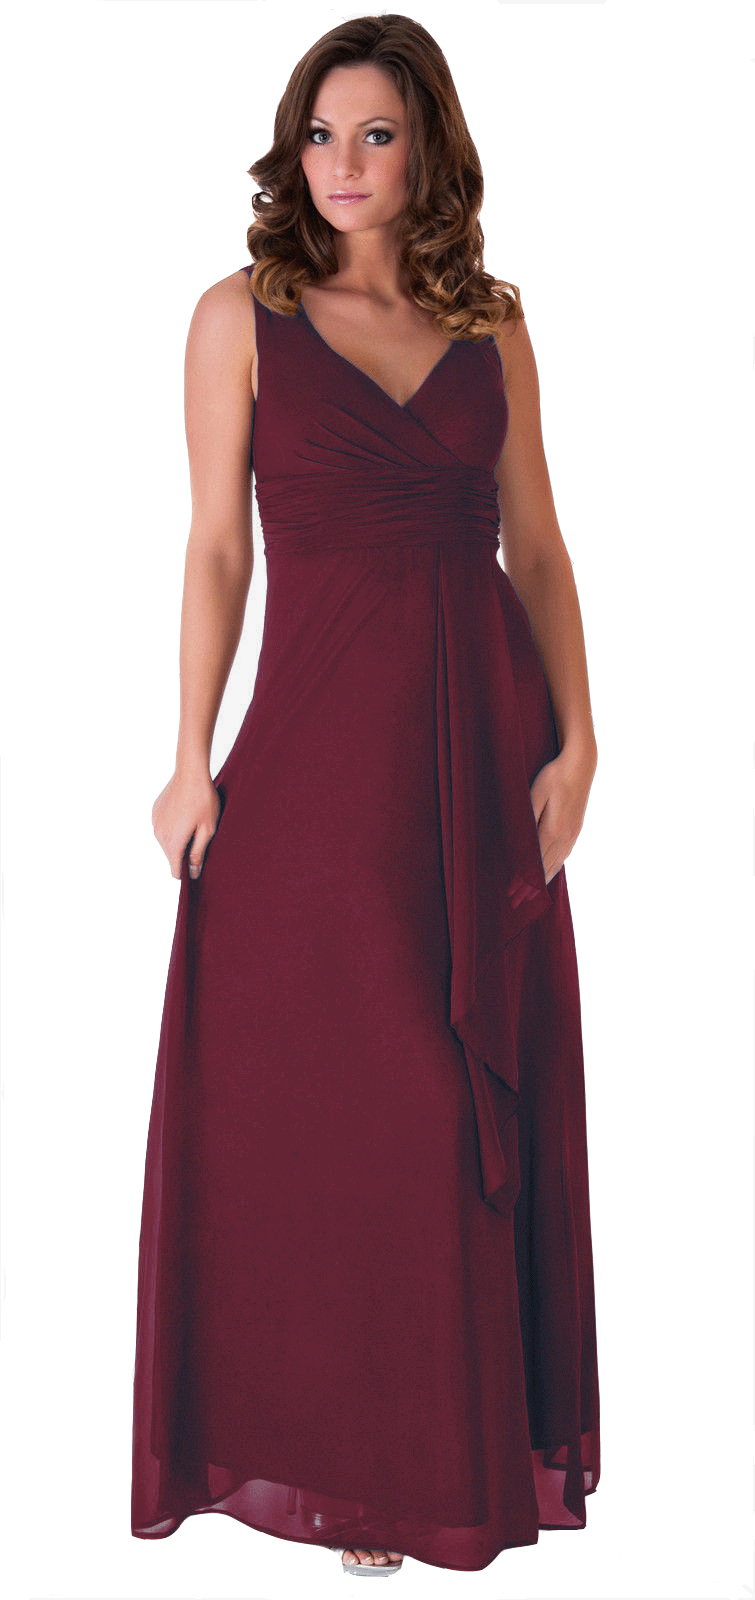 formal dress bridesmaid wedding party v neck full length With long gown for wedding